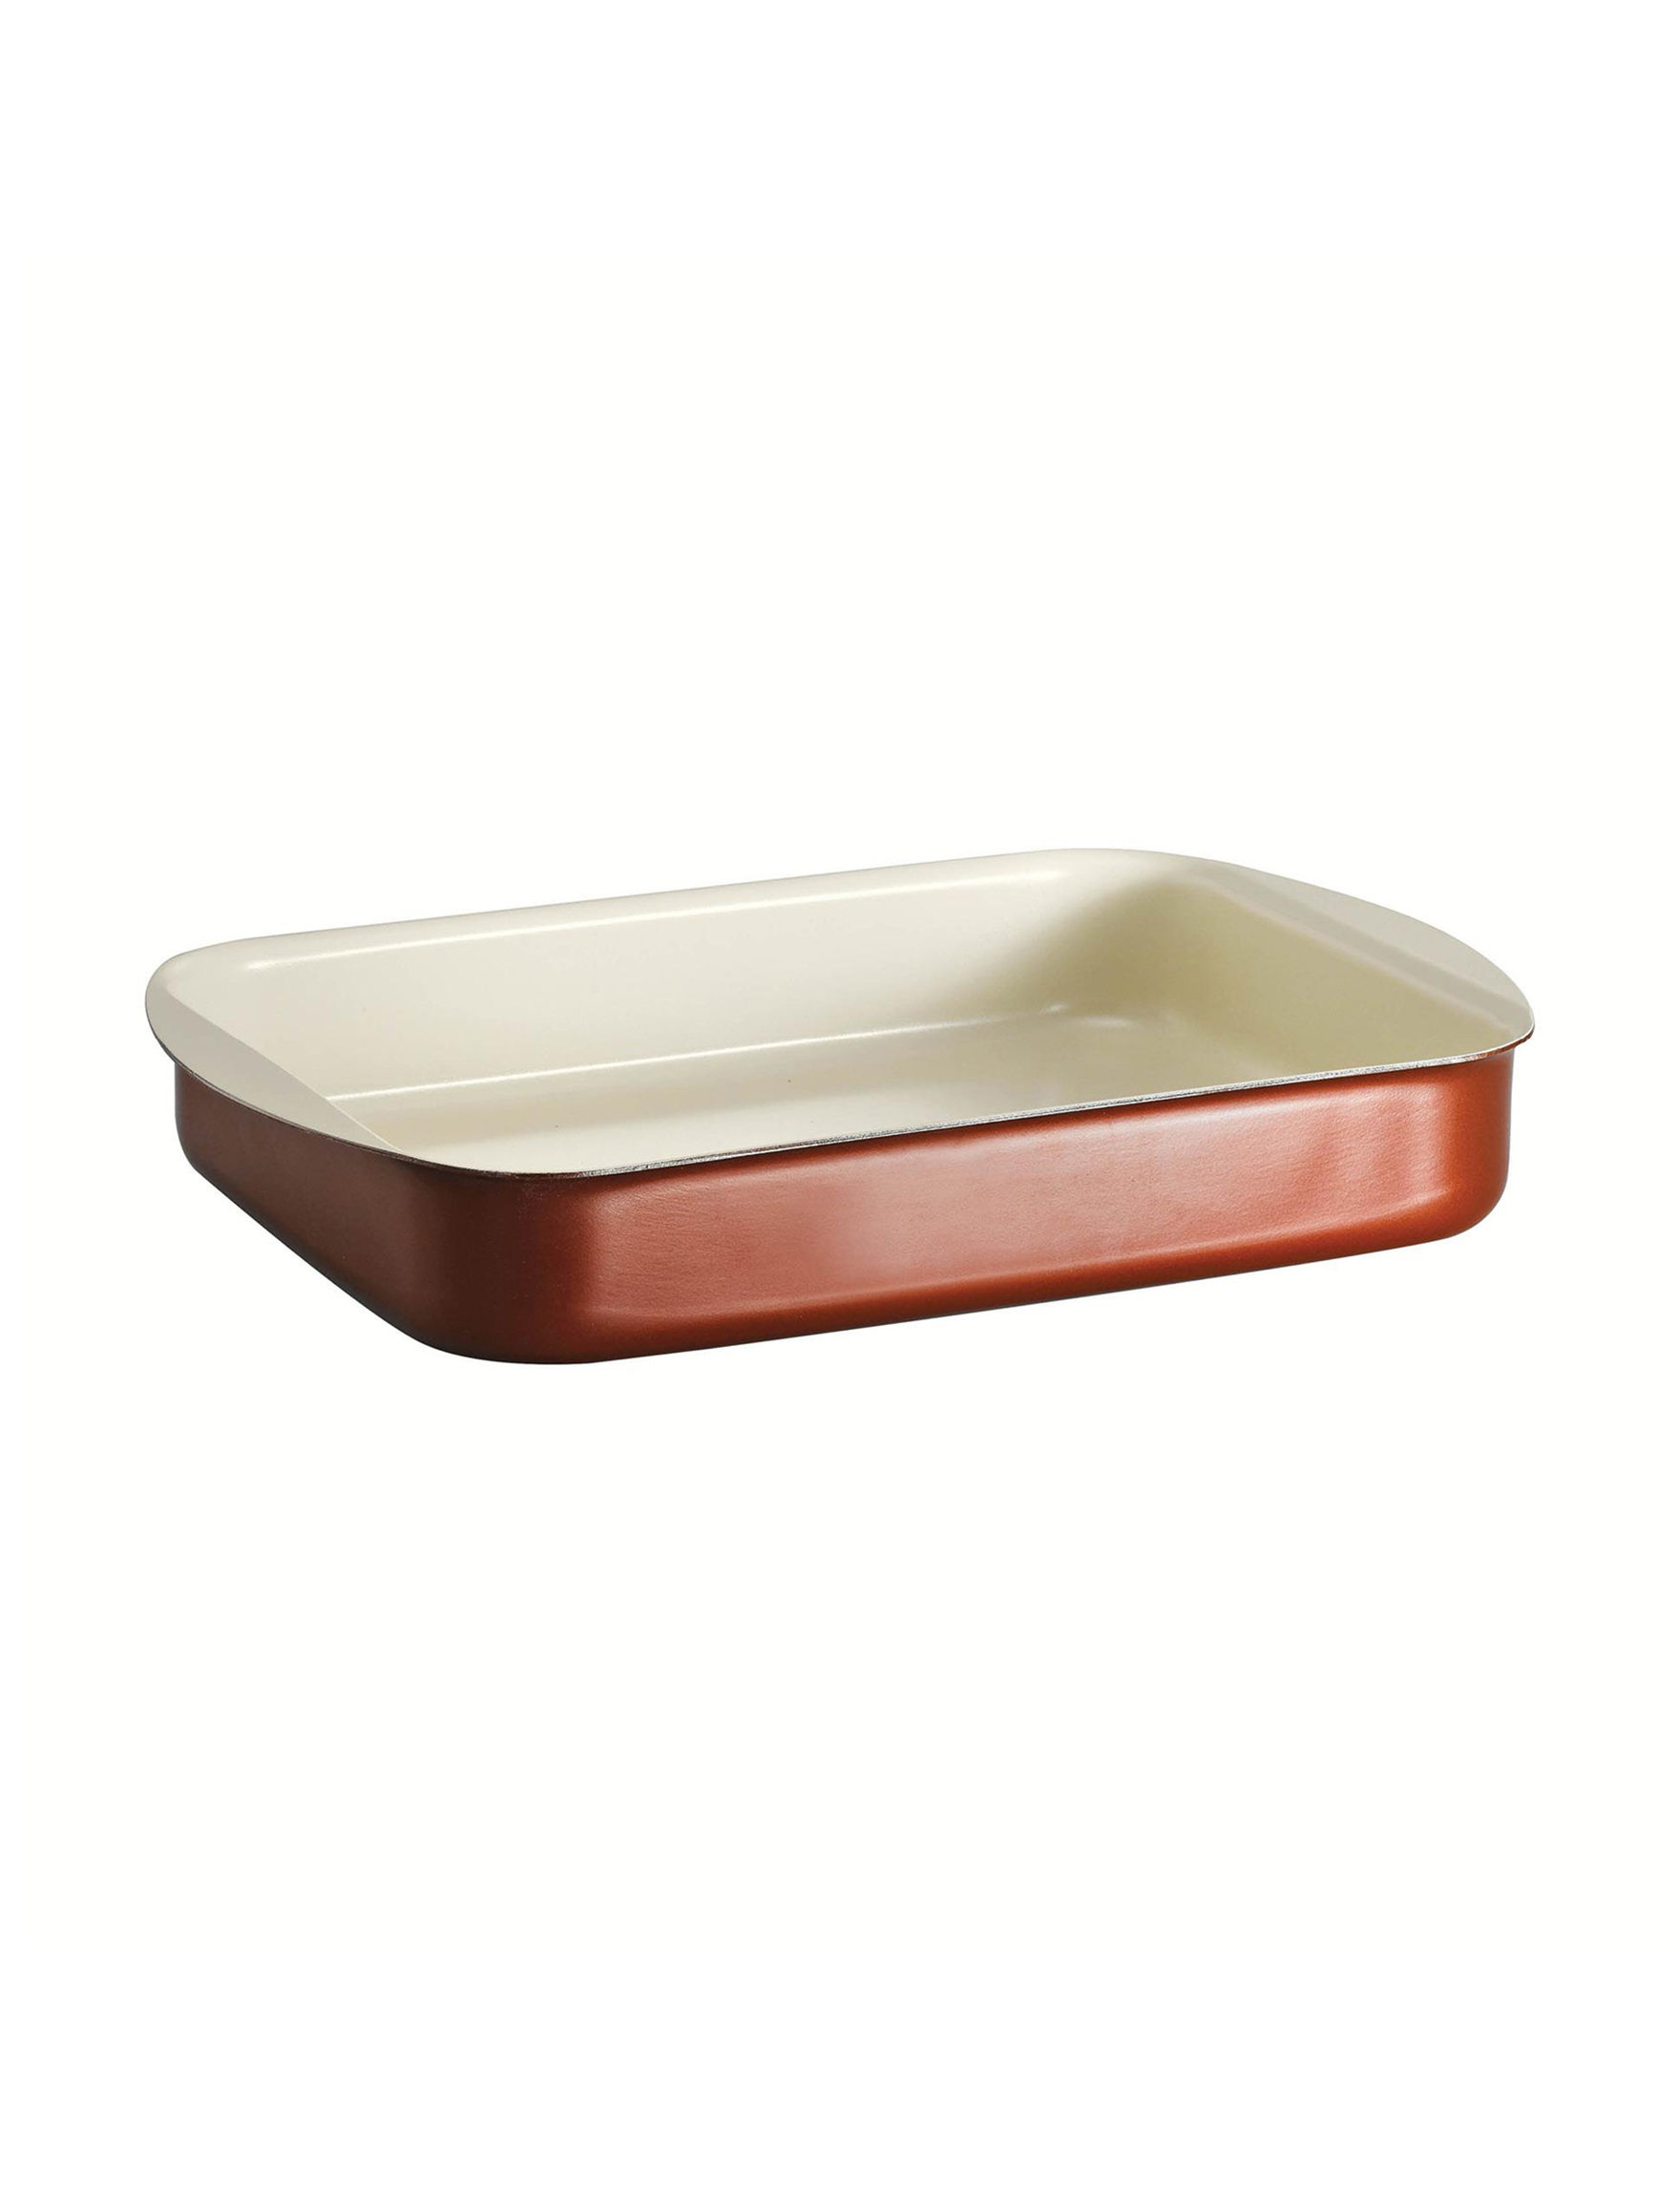 Tramontina Copper Cookware